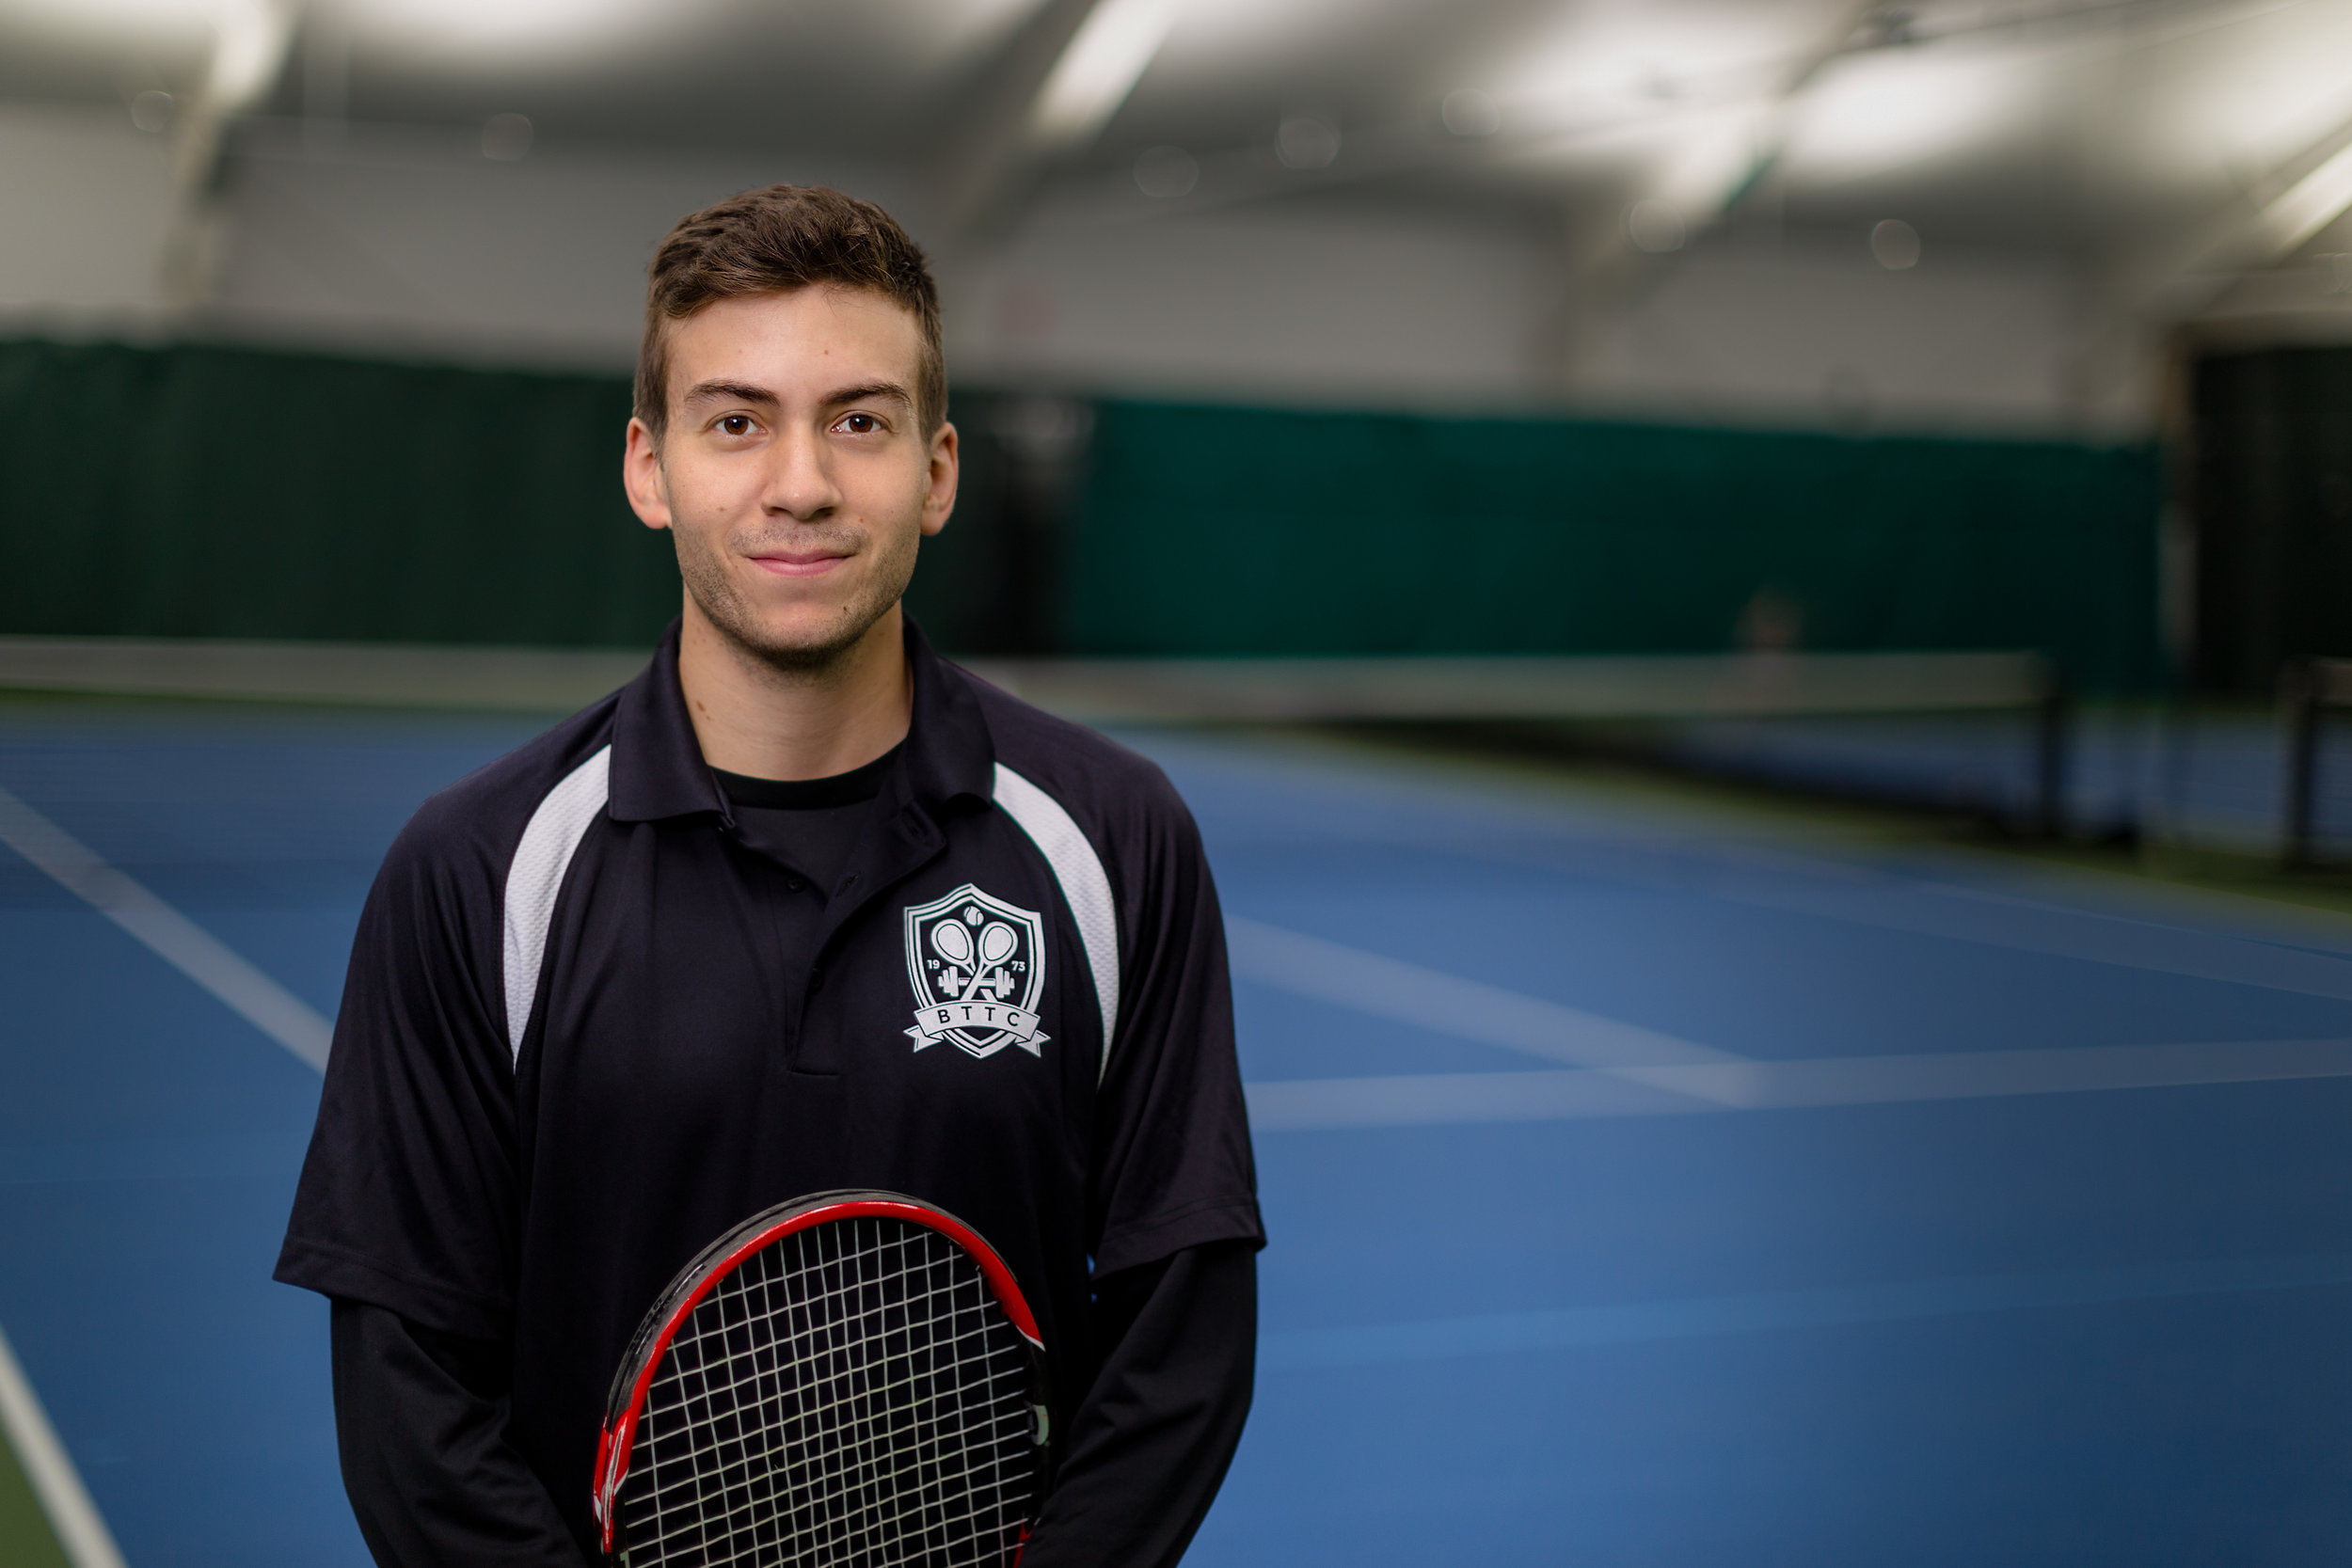 _MG_5940-Edit-1 Griffin Wood holding racquet.jpg